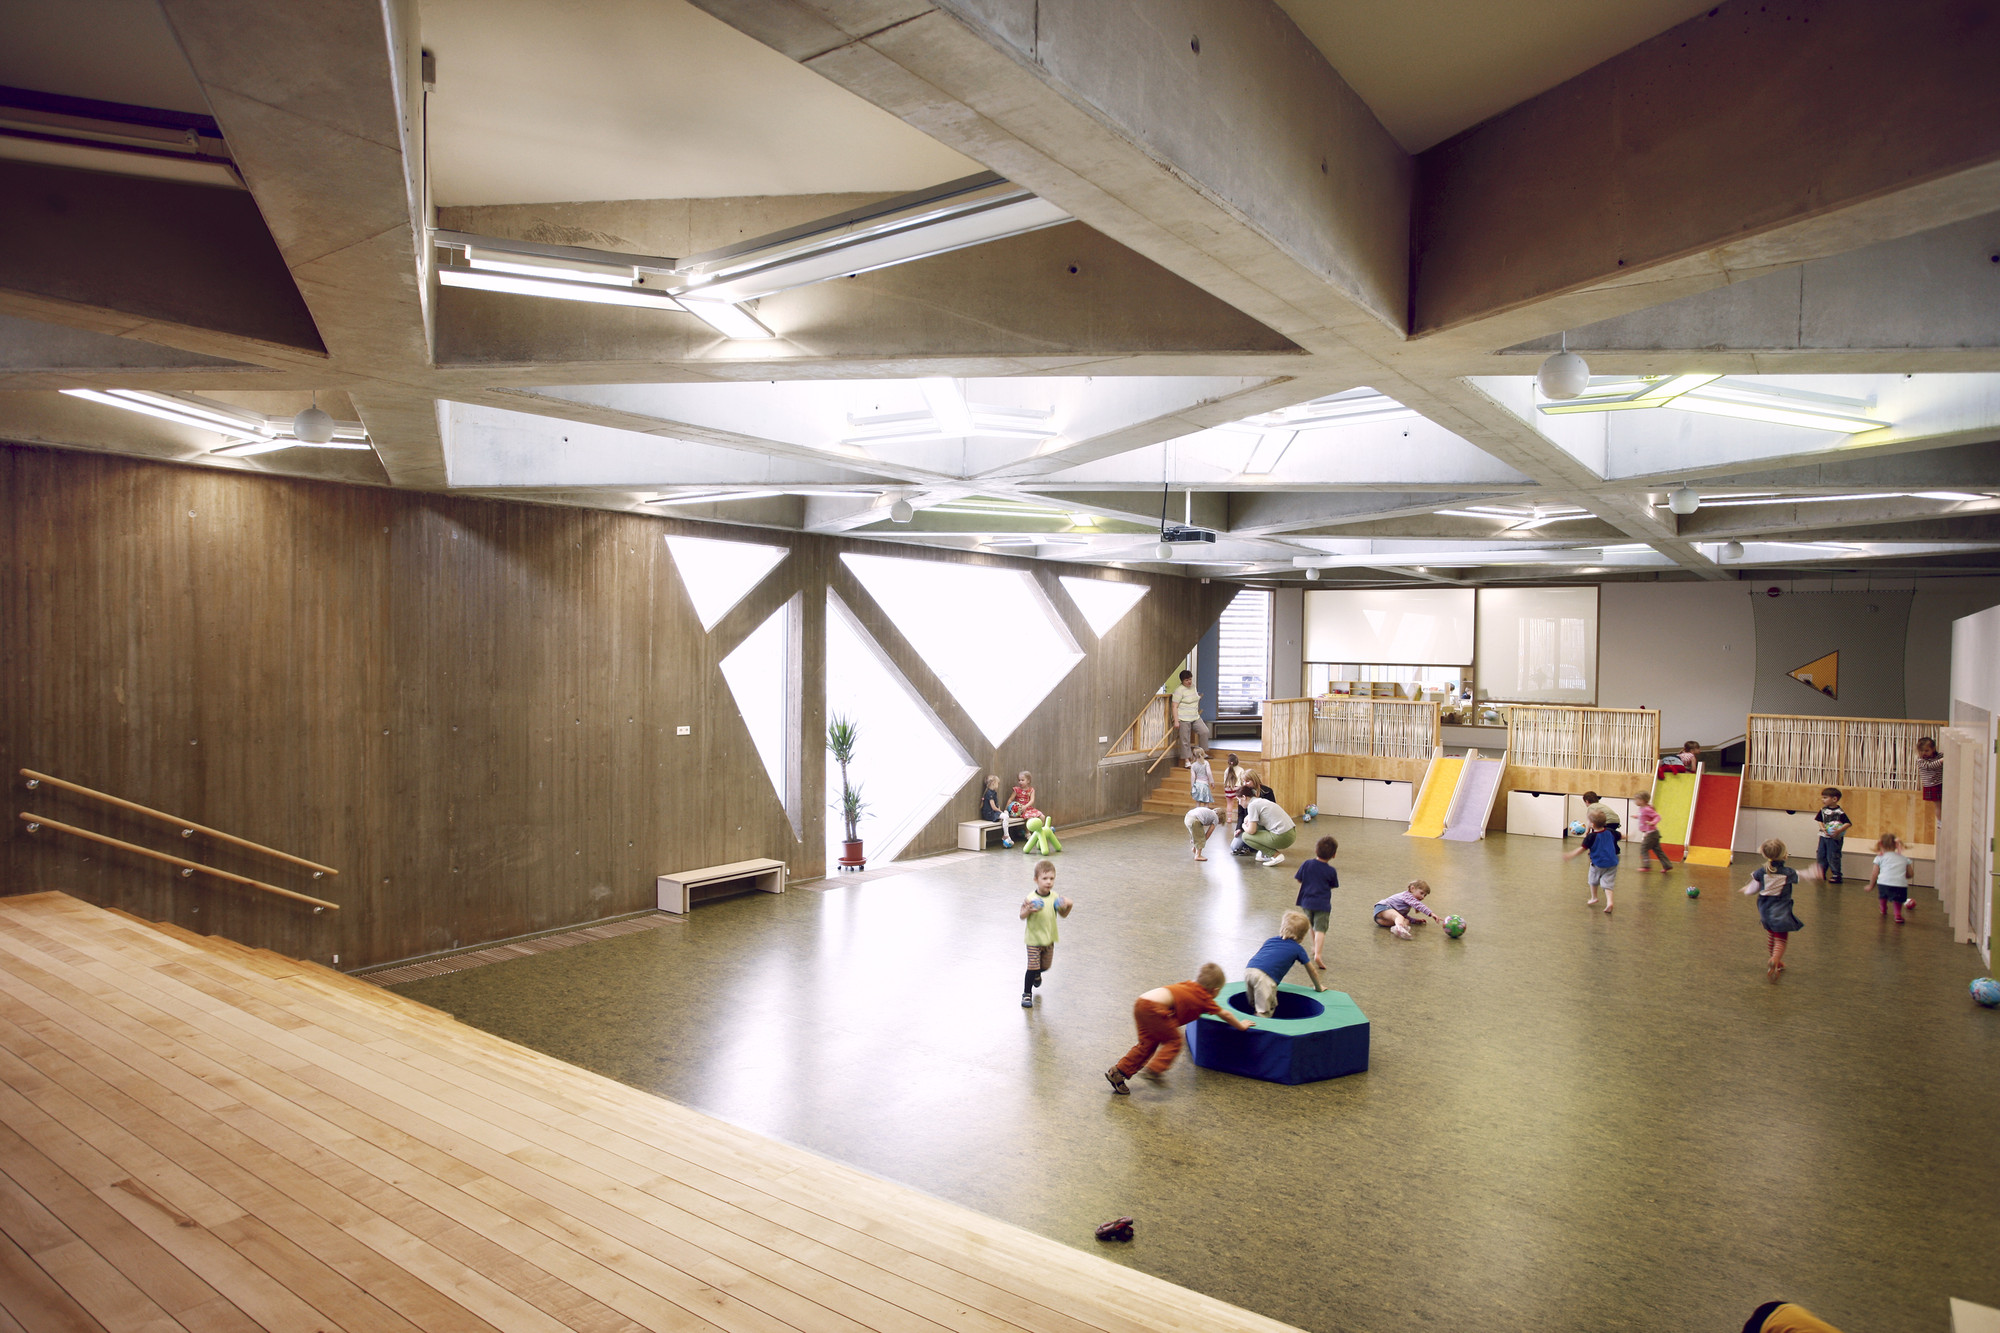 Kindergarten Lotte / Kavakava Architects, © Aivo Kallas